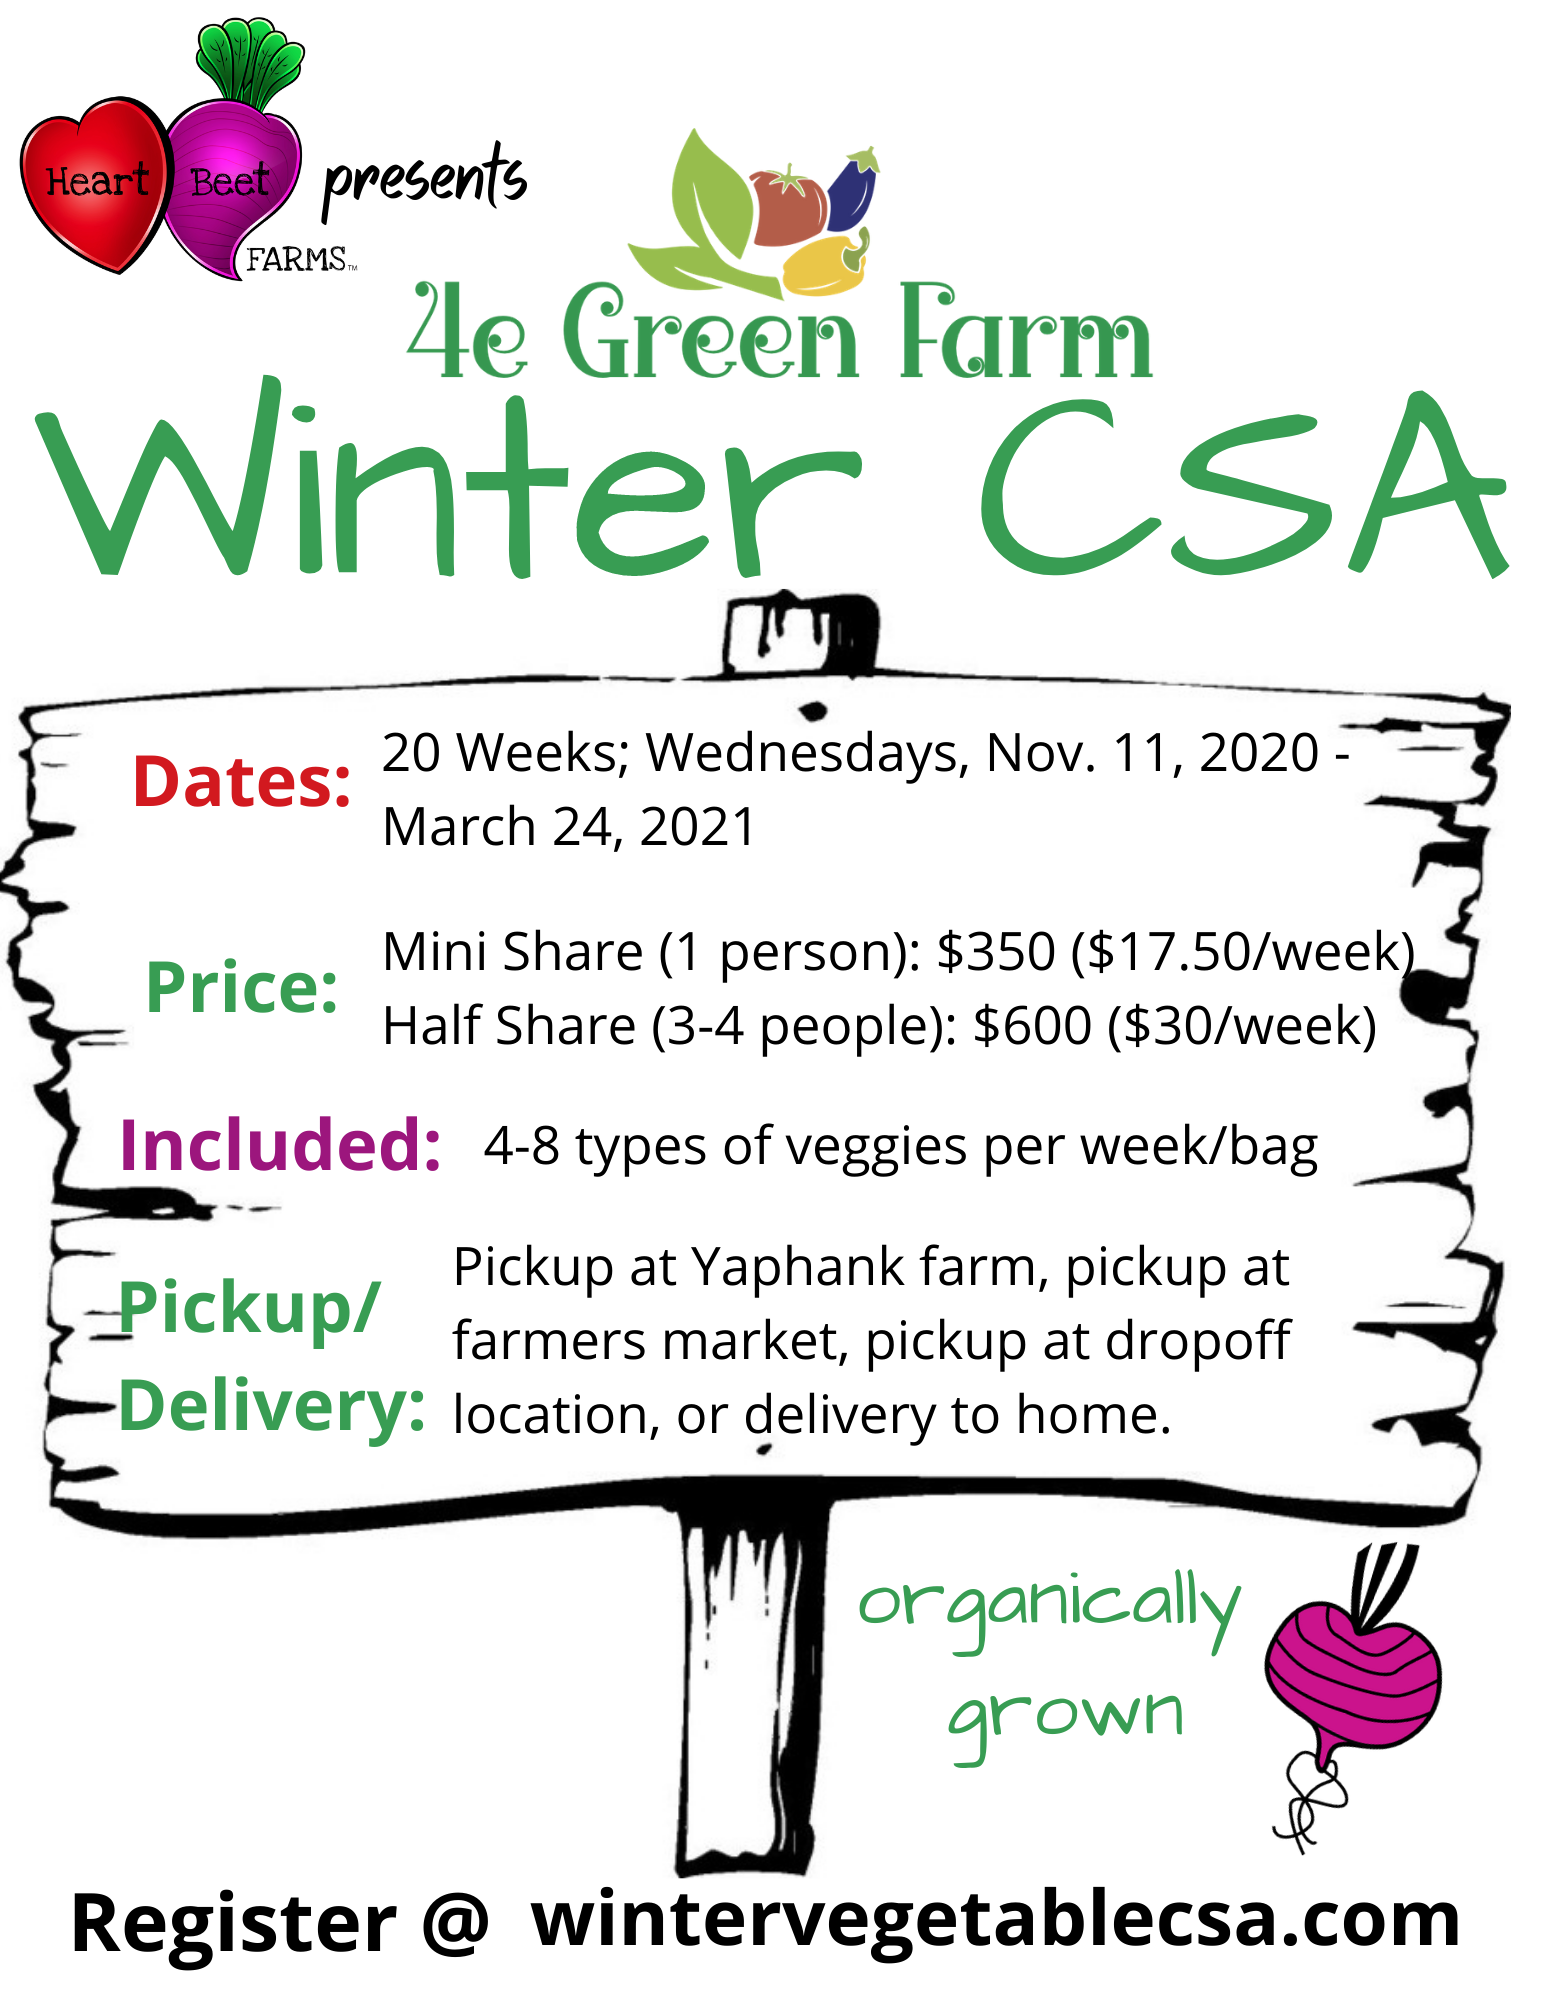 Winter Vegetable CSA